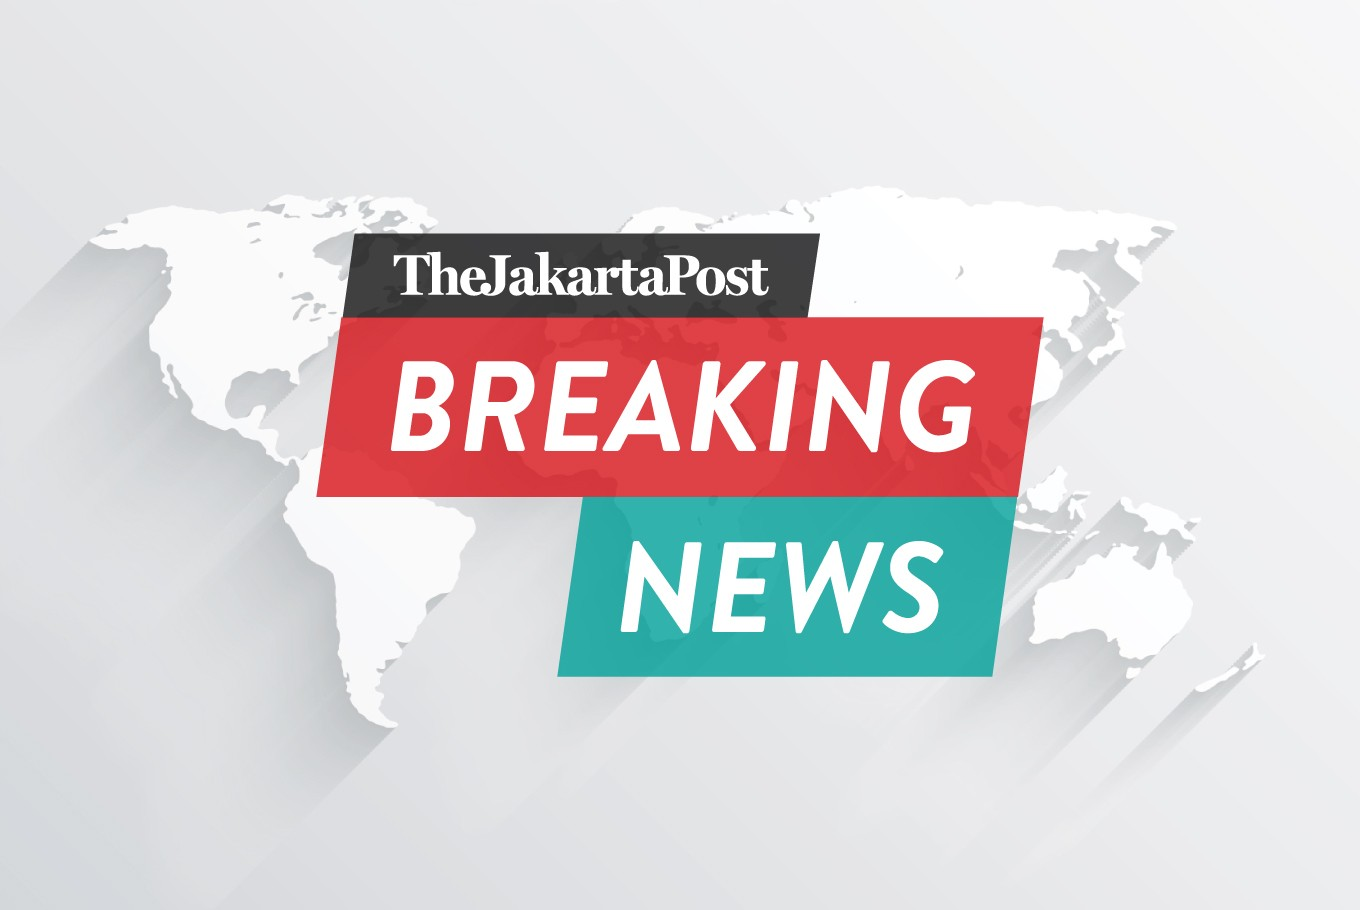 [UPDATED] 19 die after 6.5-magnitude earthquake jolts Ambon